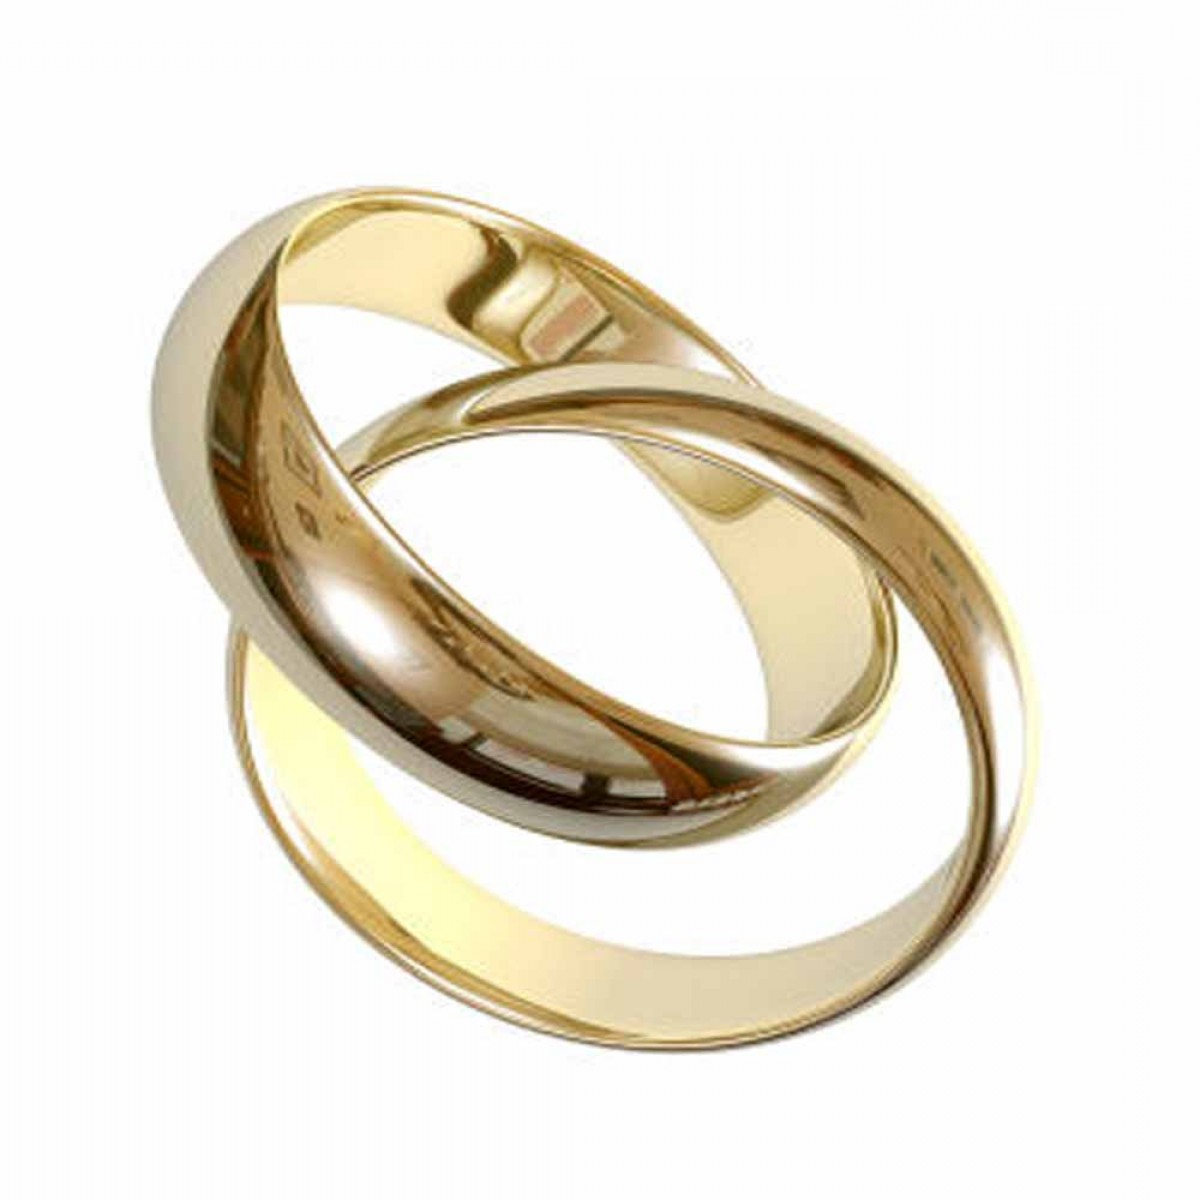 hight resolution of 1200x1200 his and her wedding rings clipart caymancode